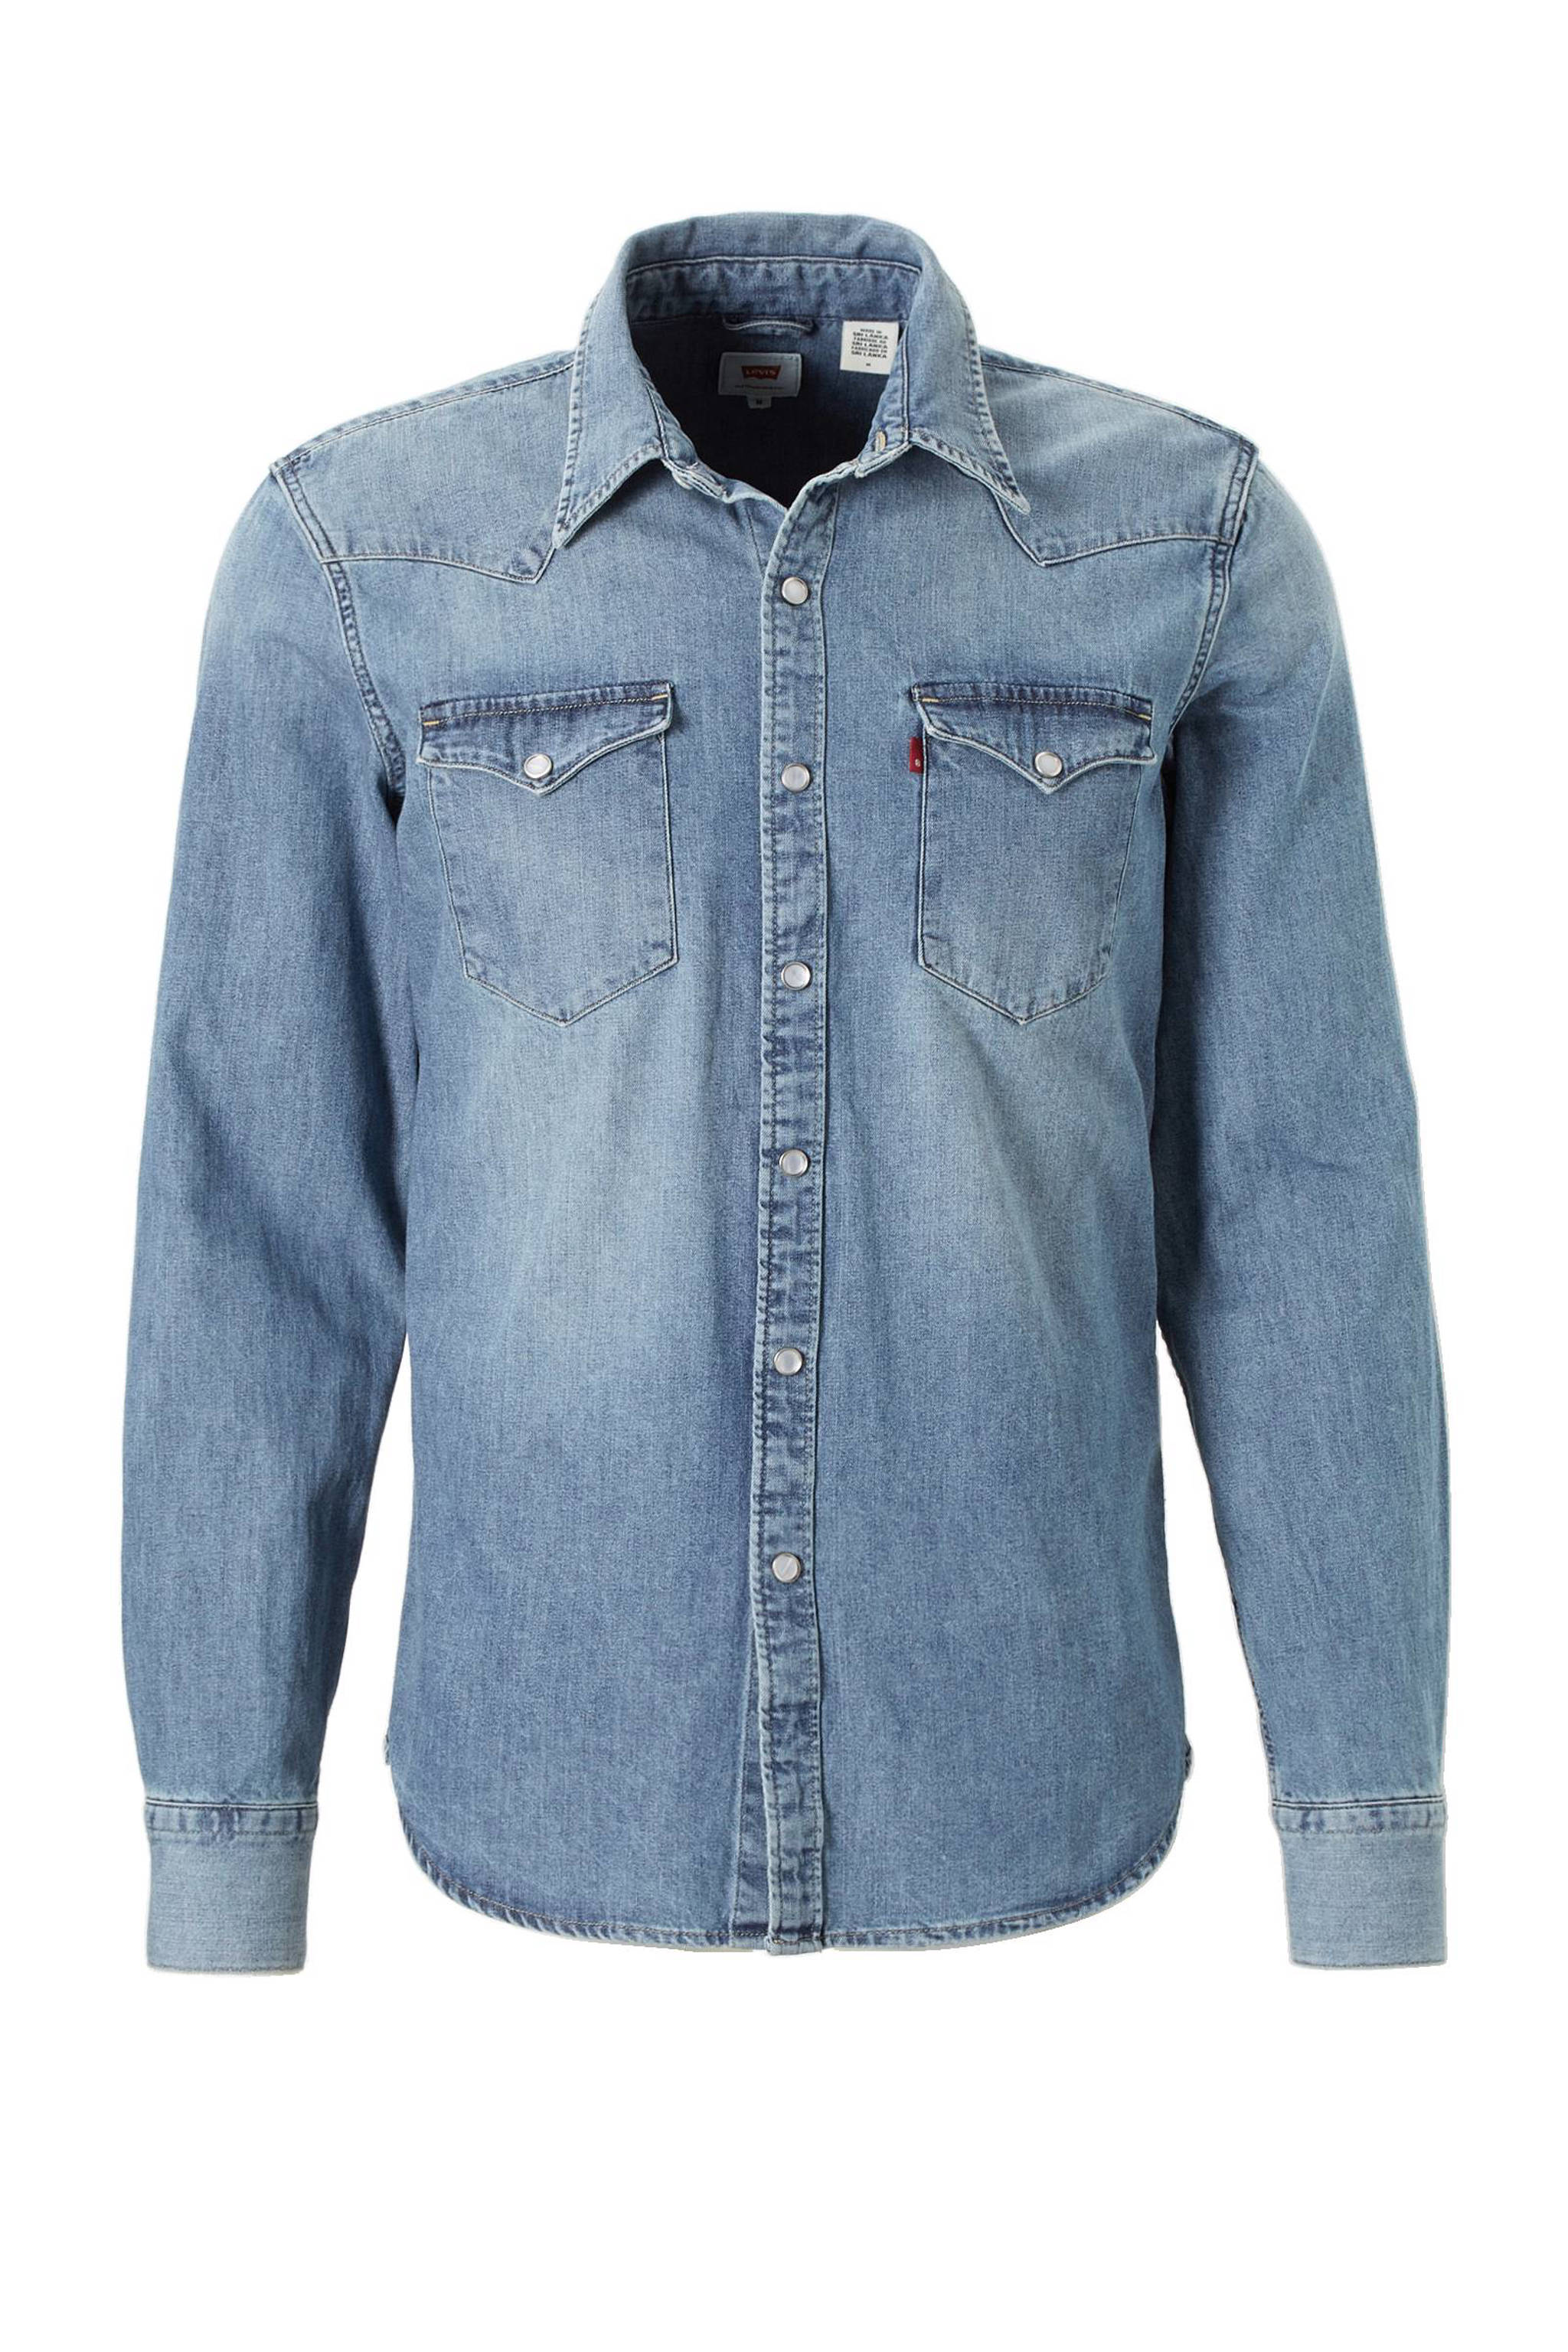 Denim Overhemd Heren.Levi S Denim Overhemd Wehkamp